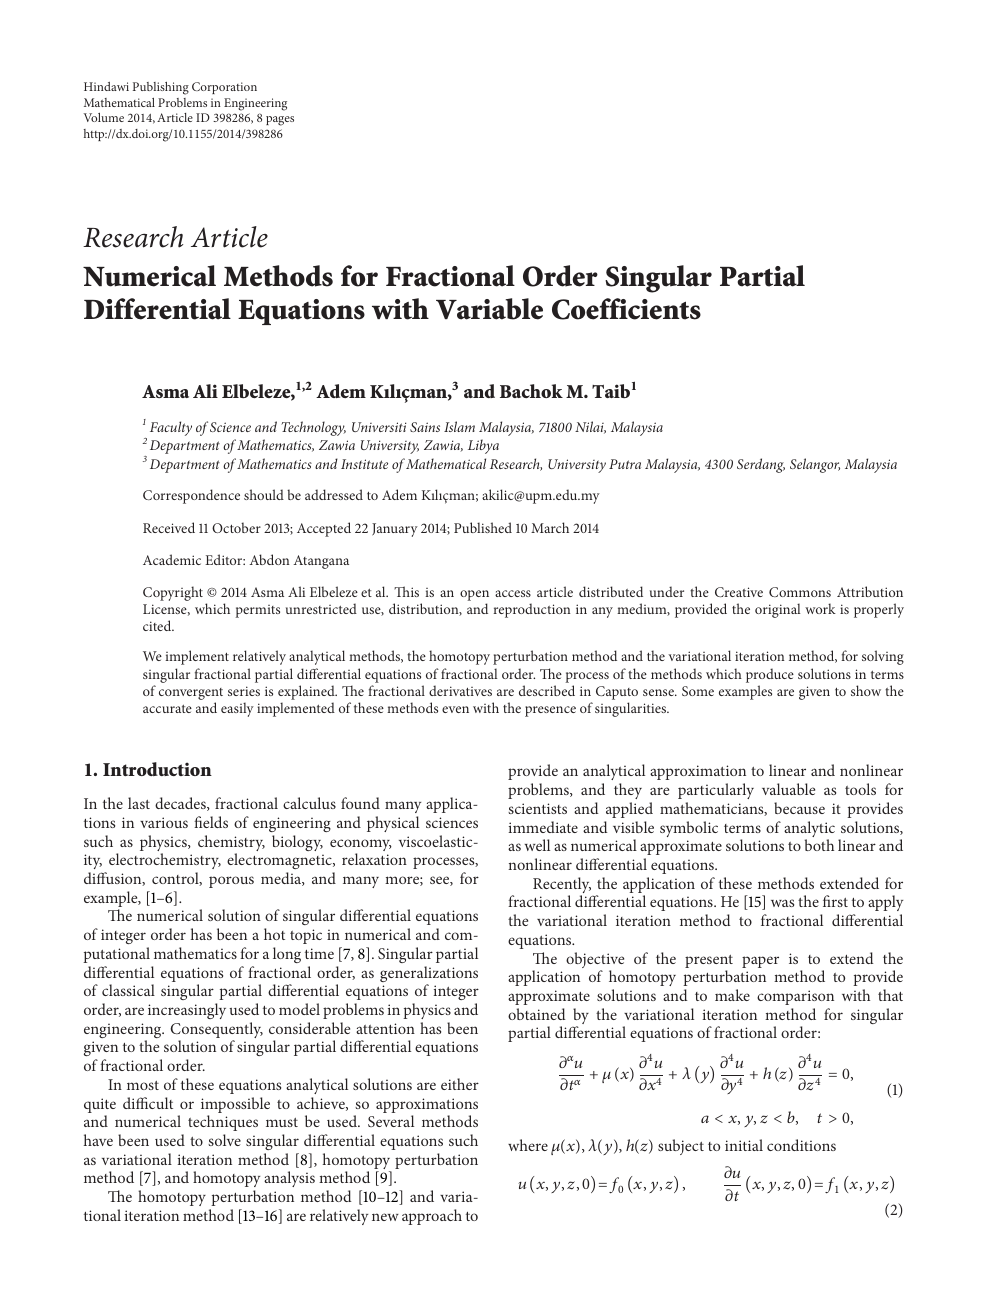 Numerical Methods for Fractional Order Singular Partial